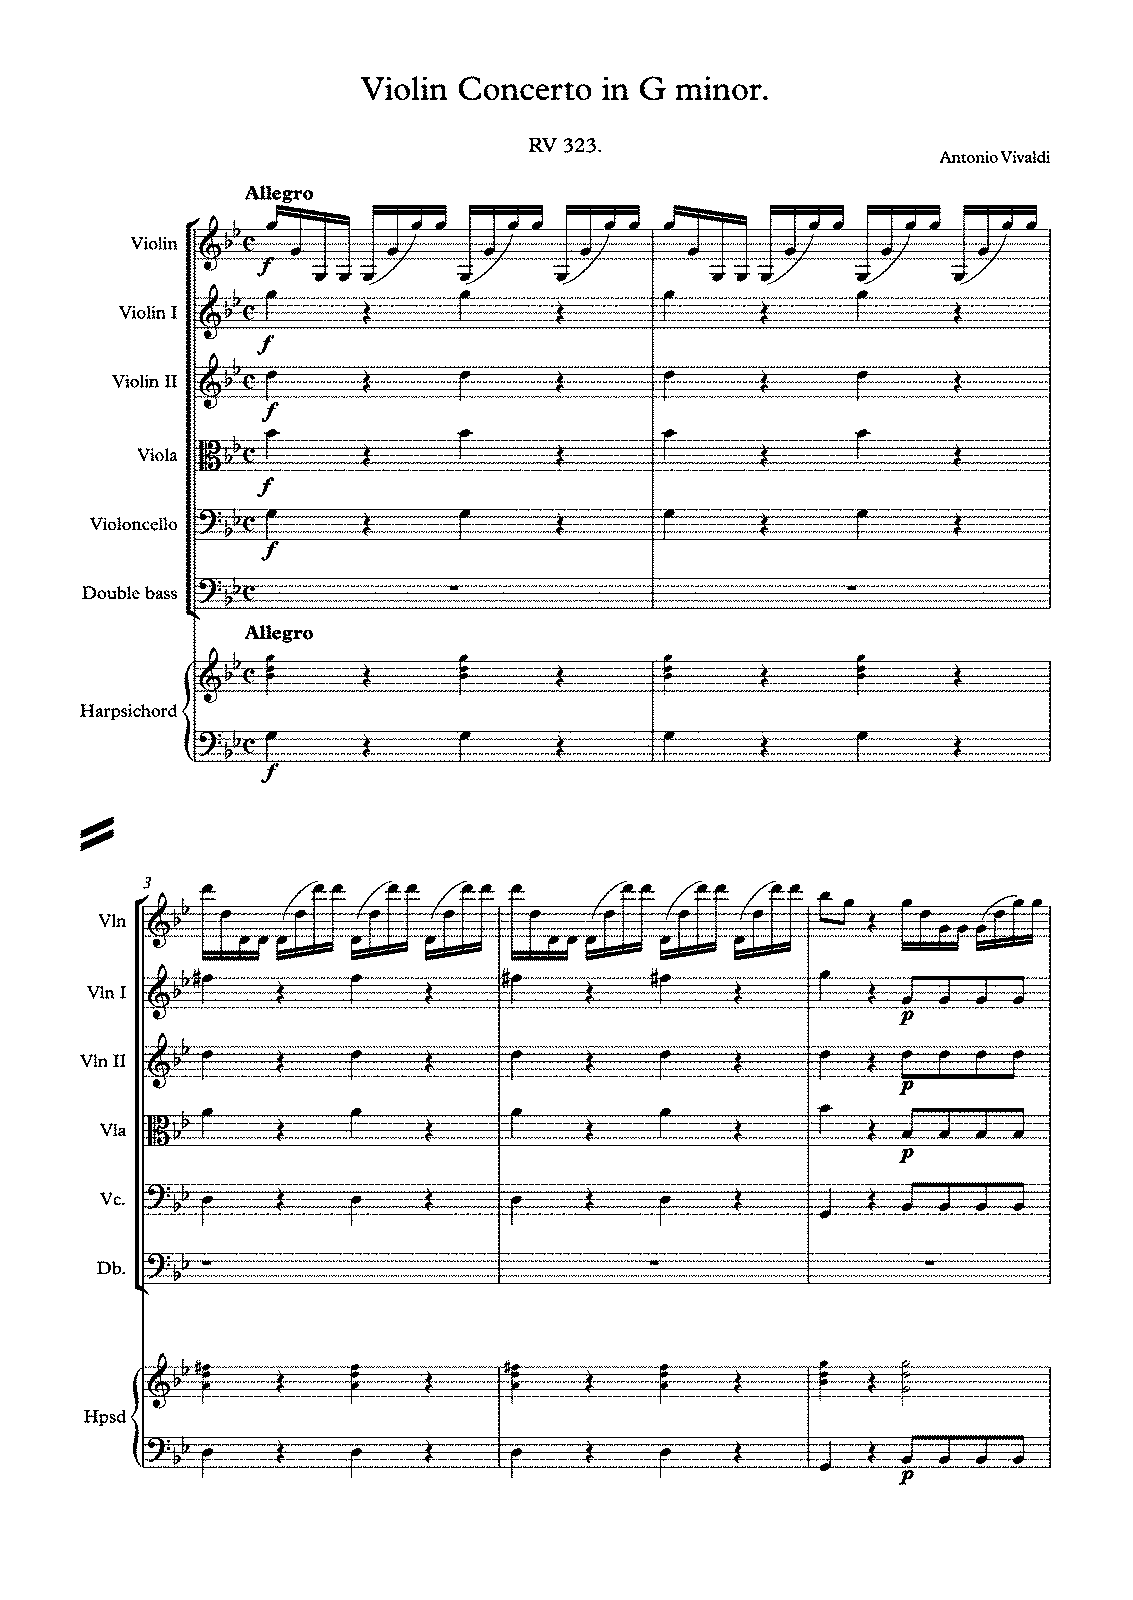 PMLP112442-Antonio Vivaldi - Violin Concerto in G minor, RV 323.pdf